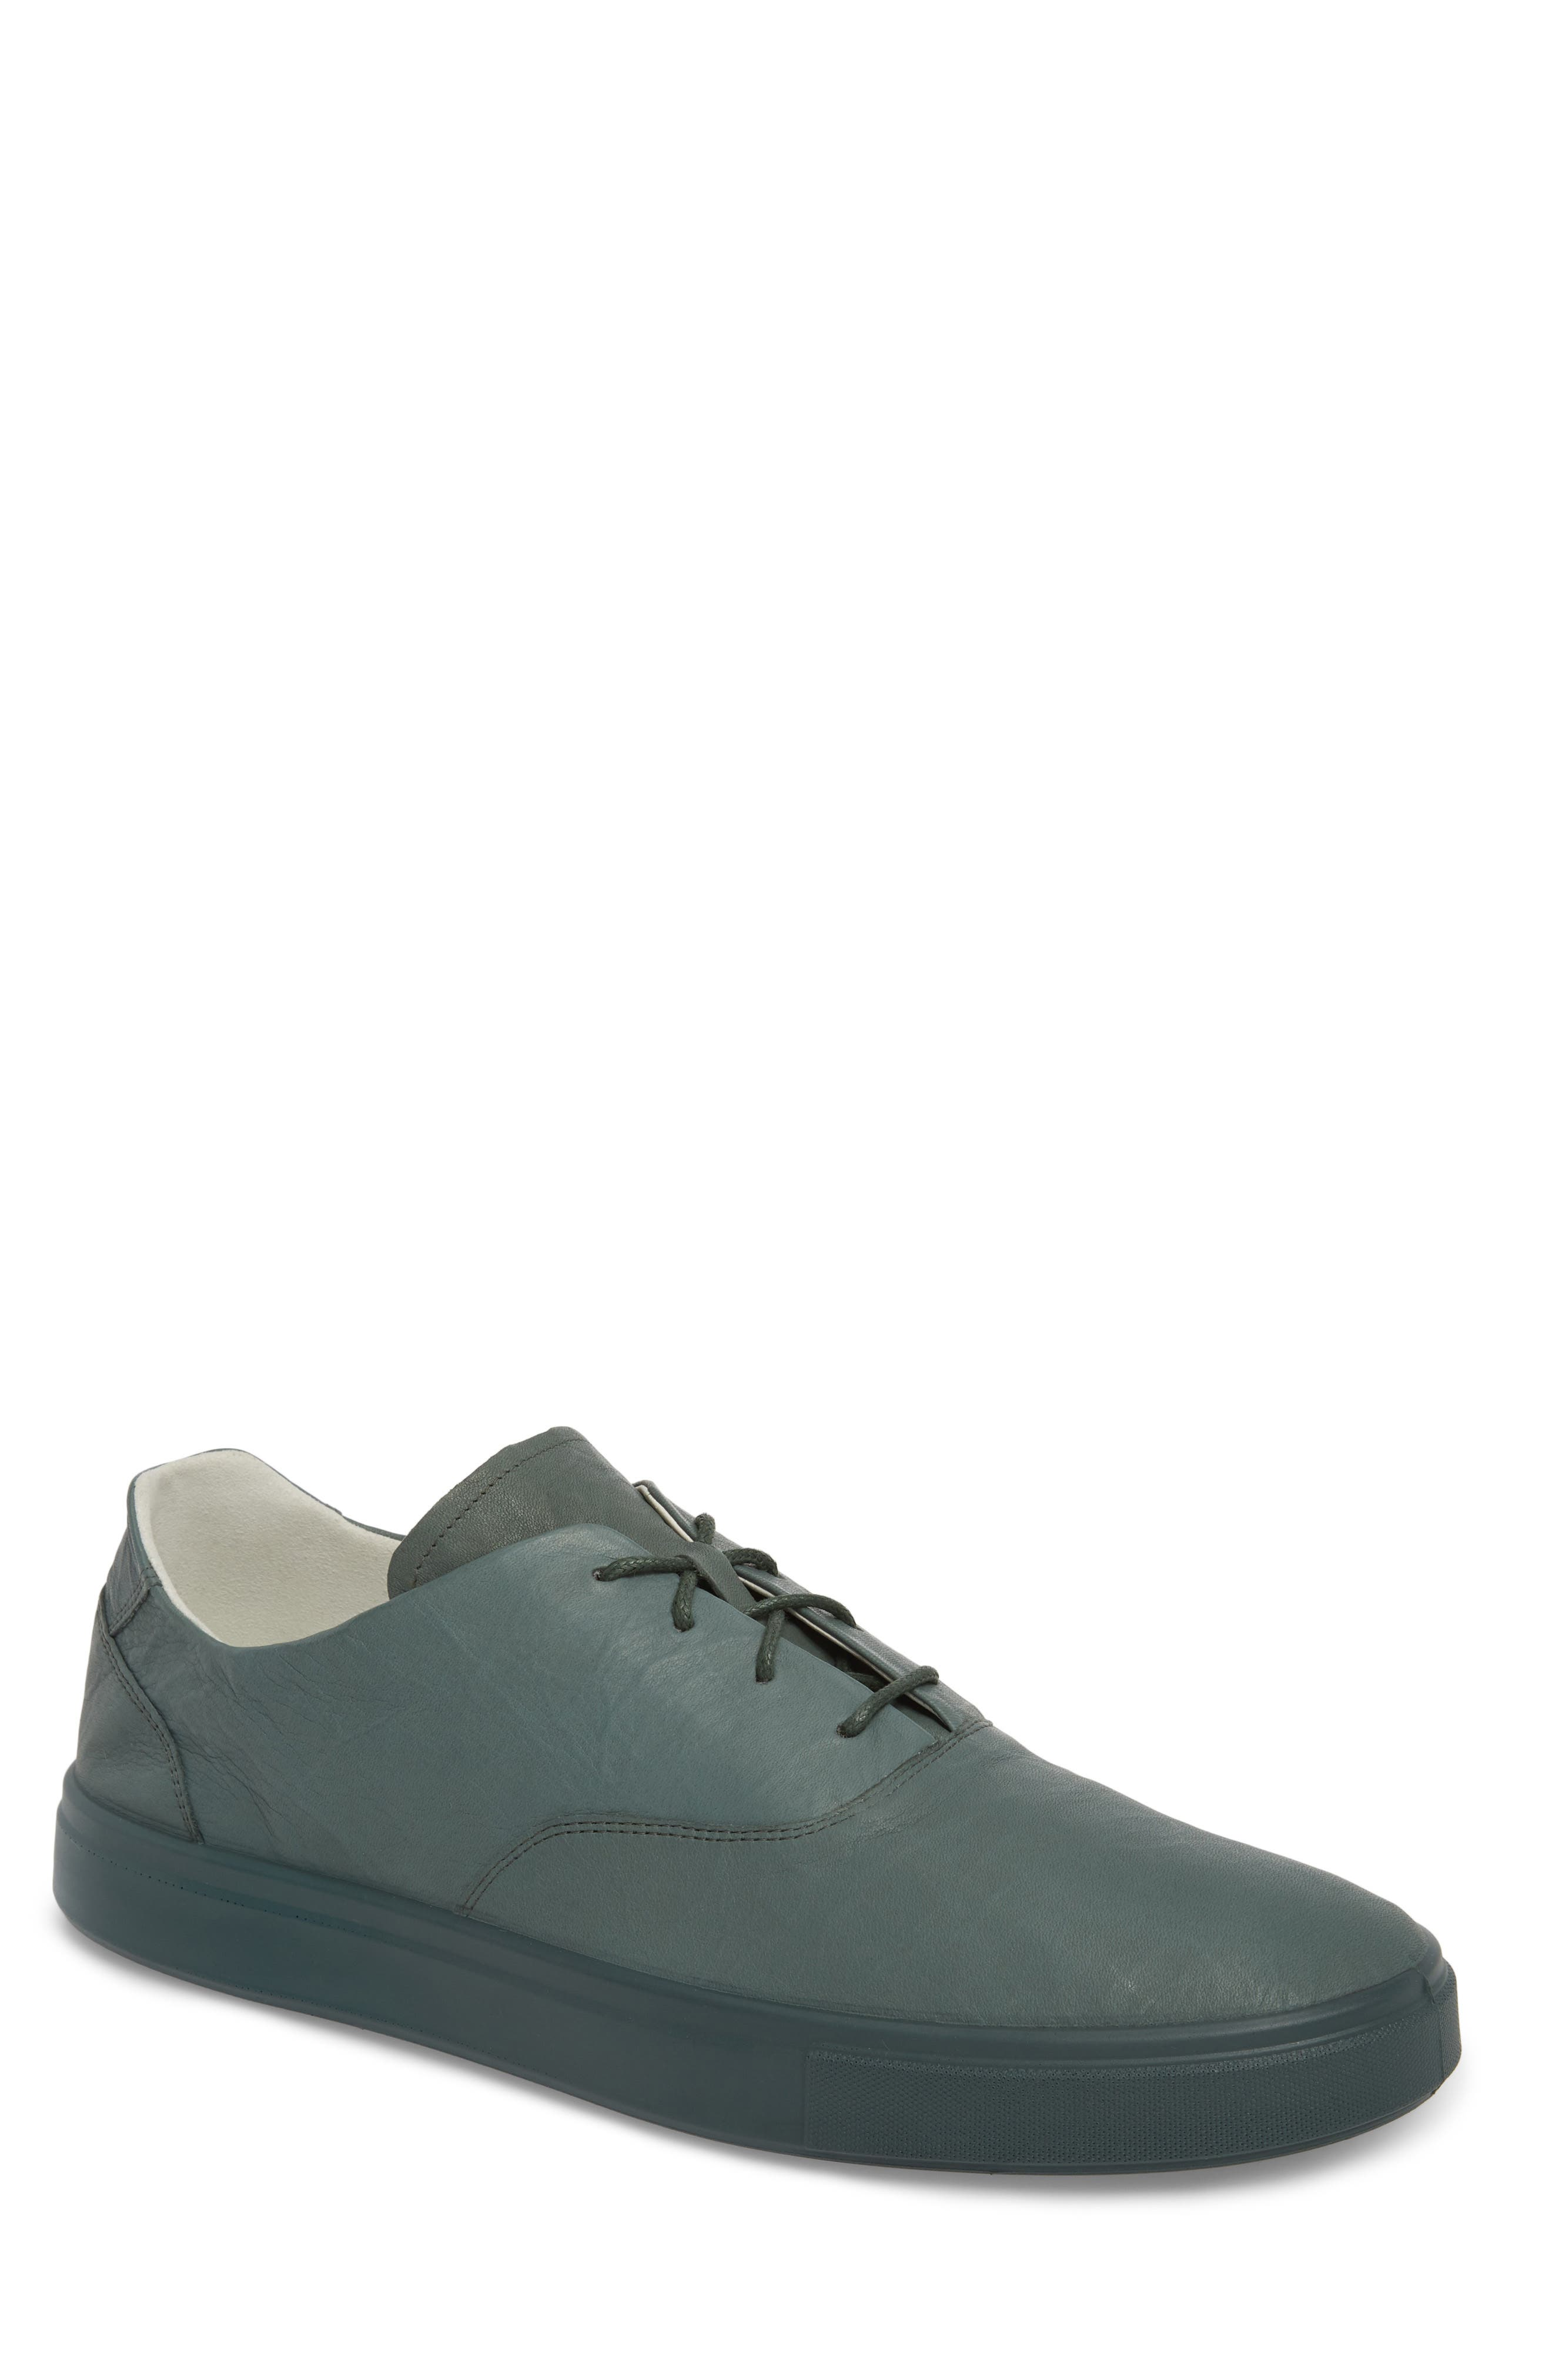 Kyle Low Top Sneaker,                         Main,                         color, Military Sage Leather